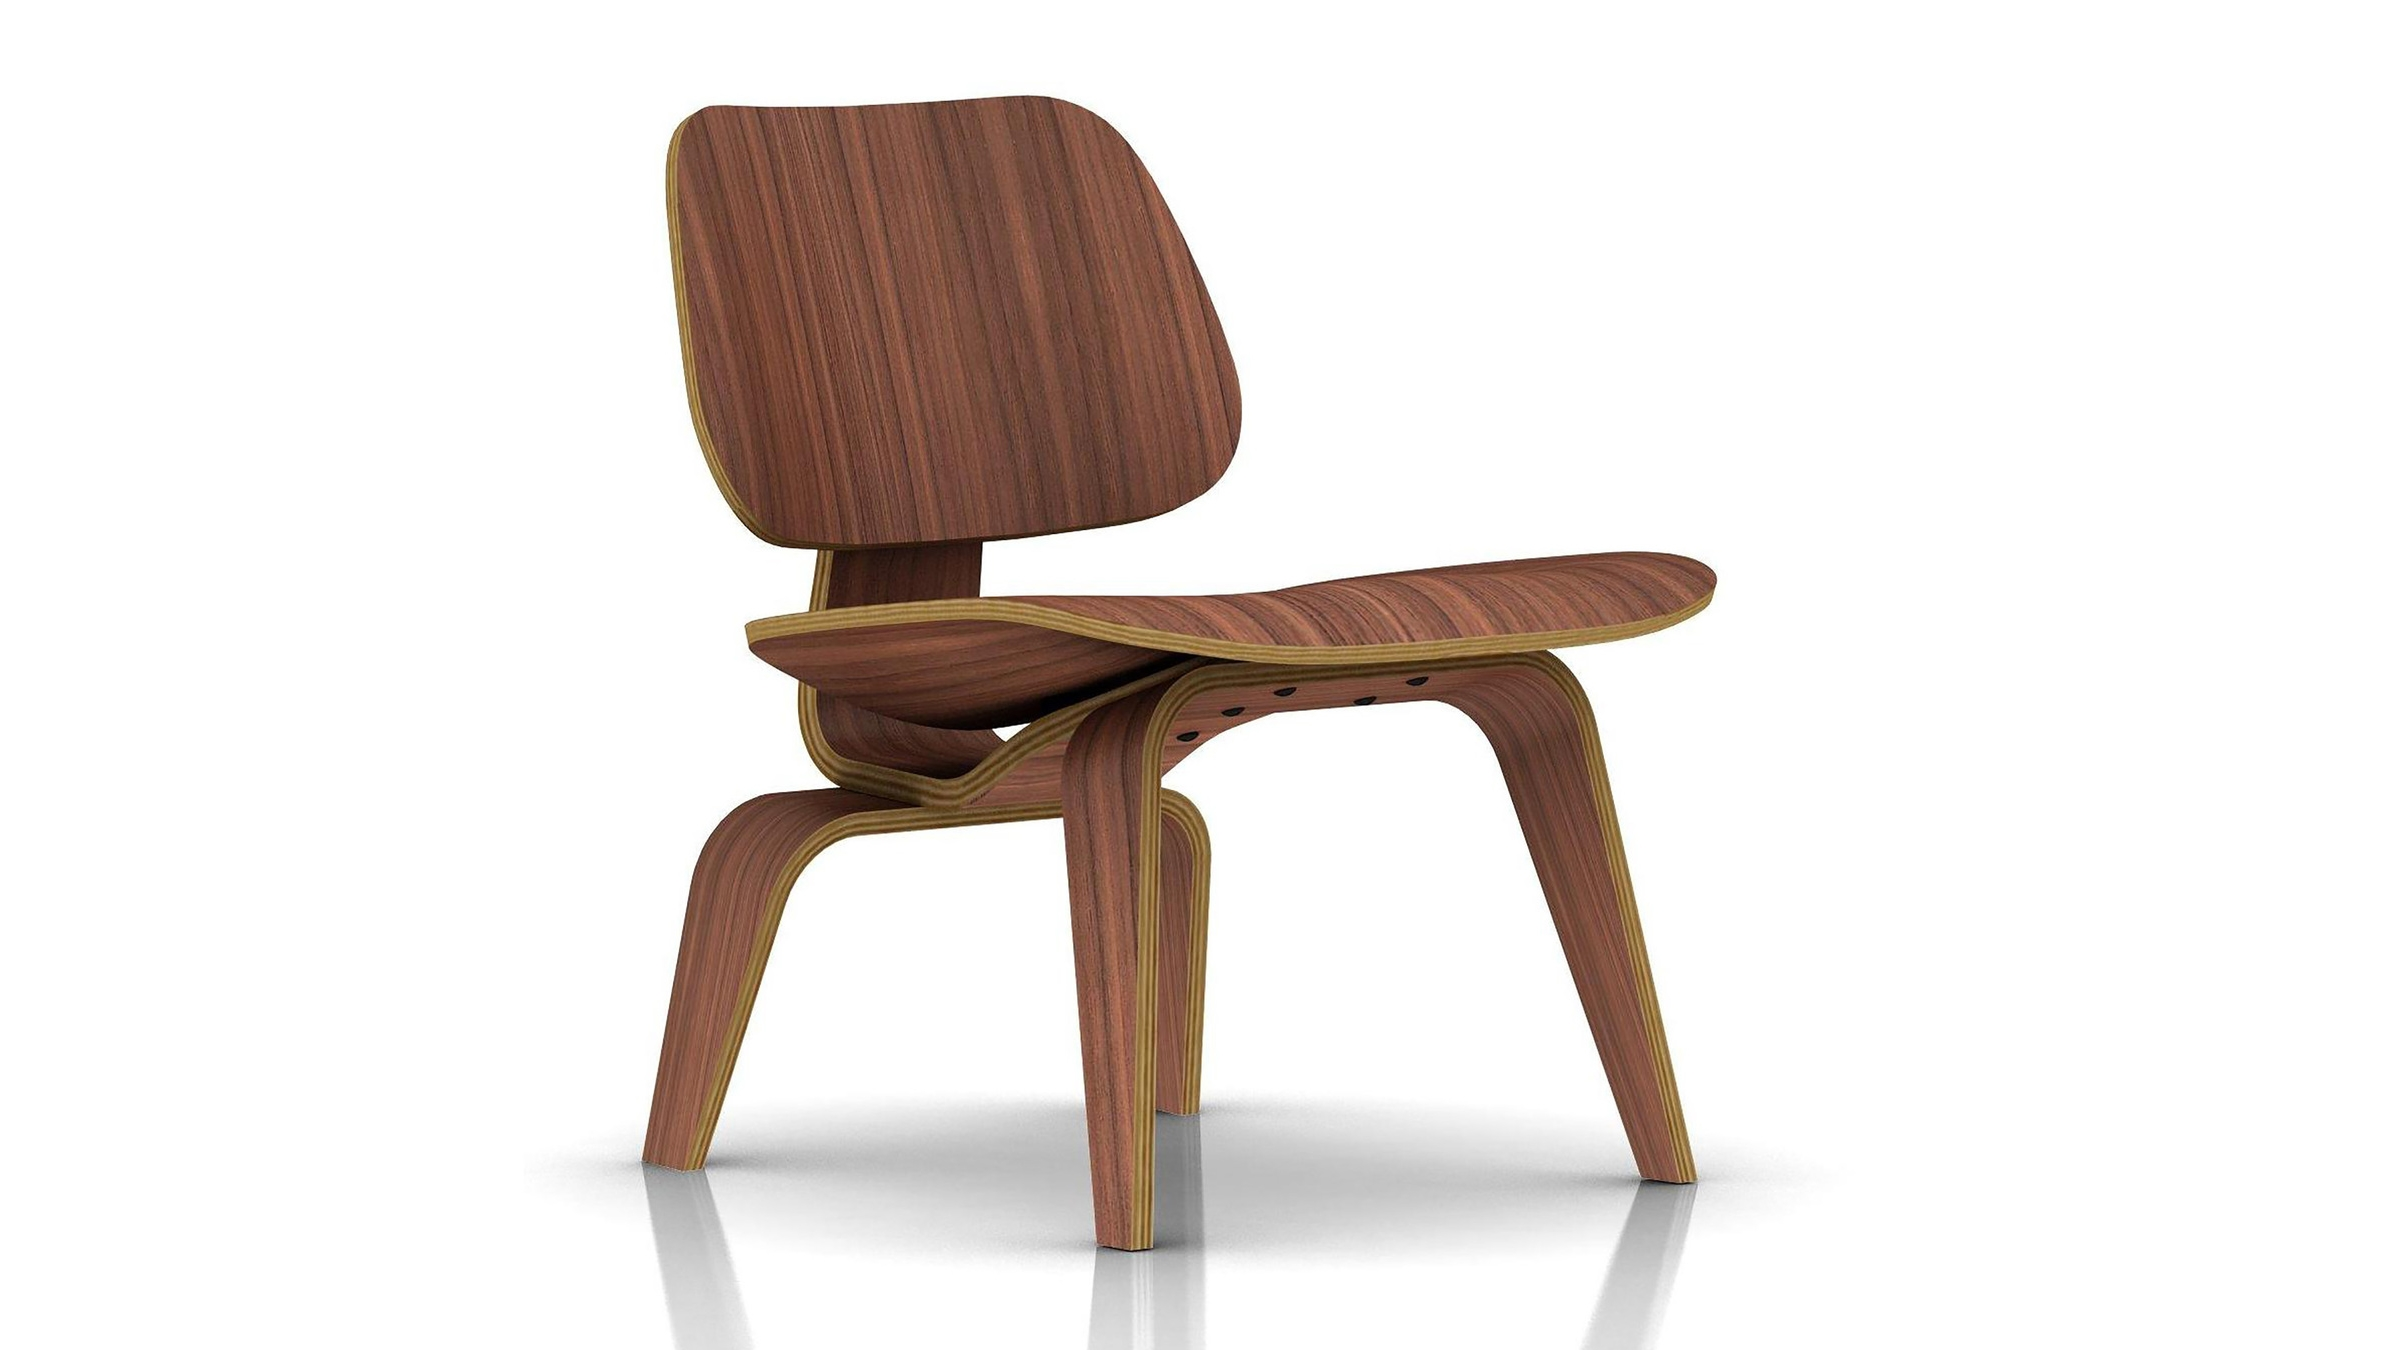 Eames Molded Plywood Lounge Chair with Wood Base (1945) | Herman Miller